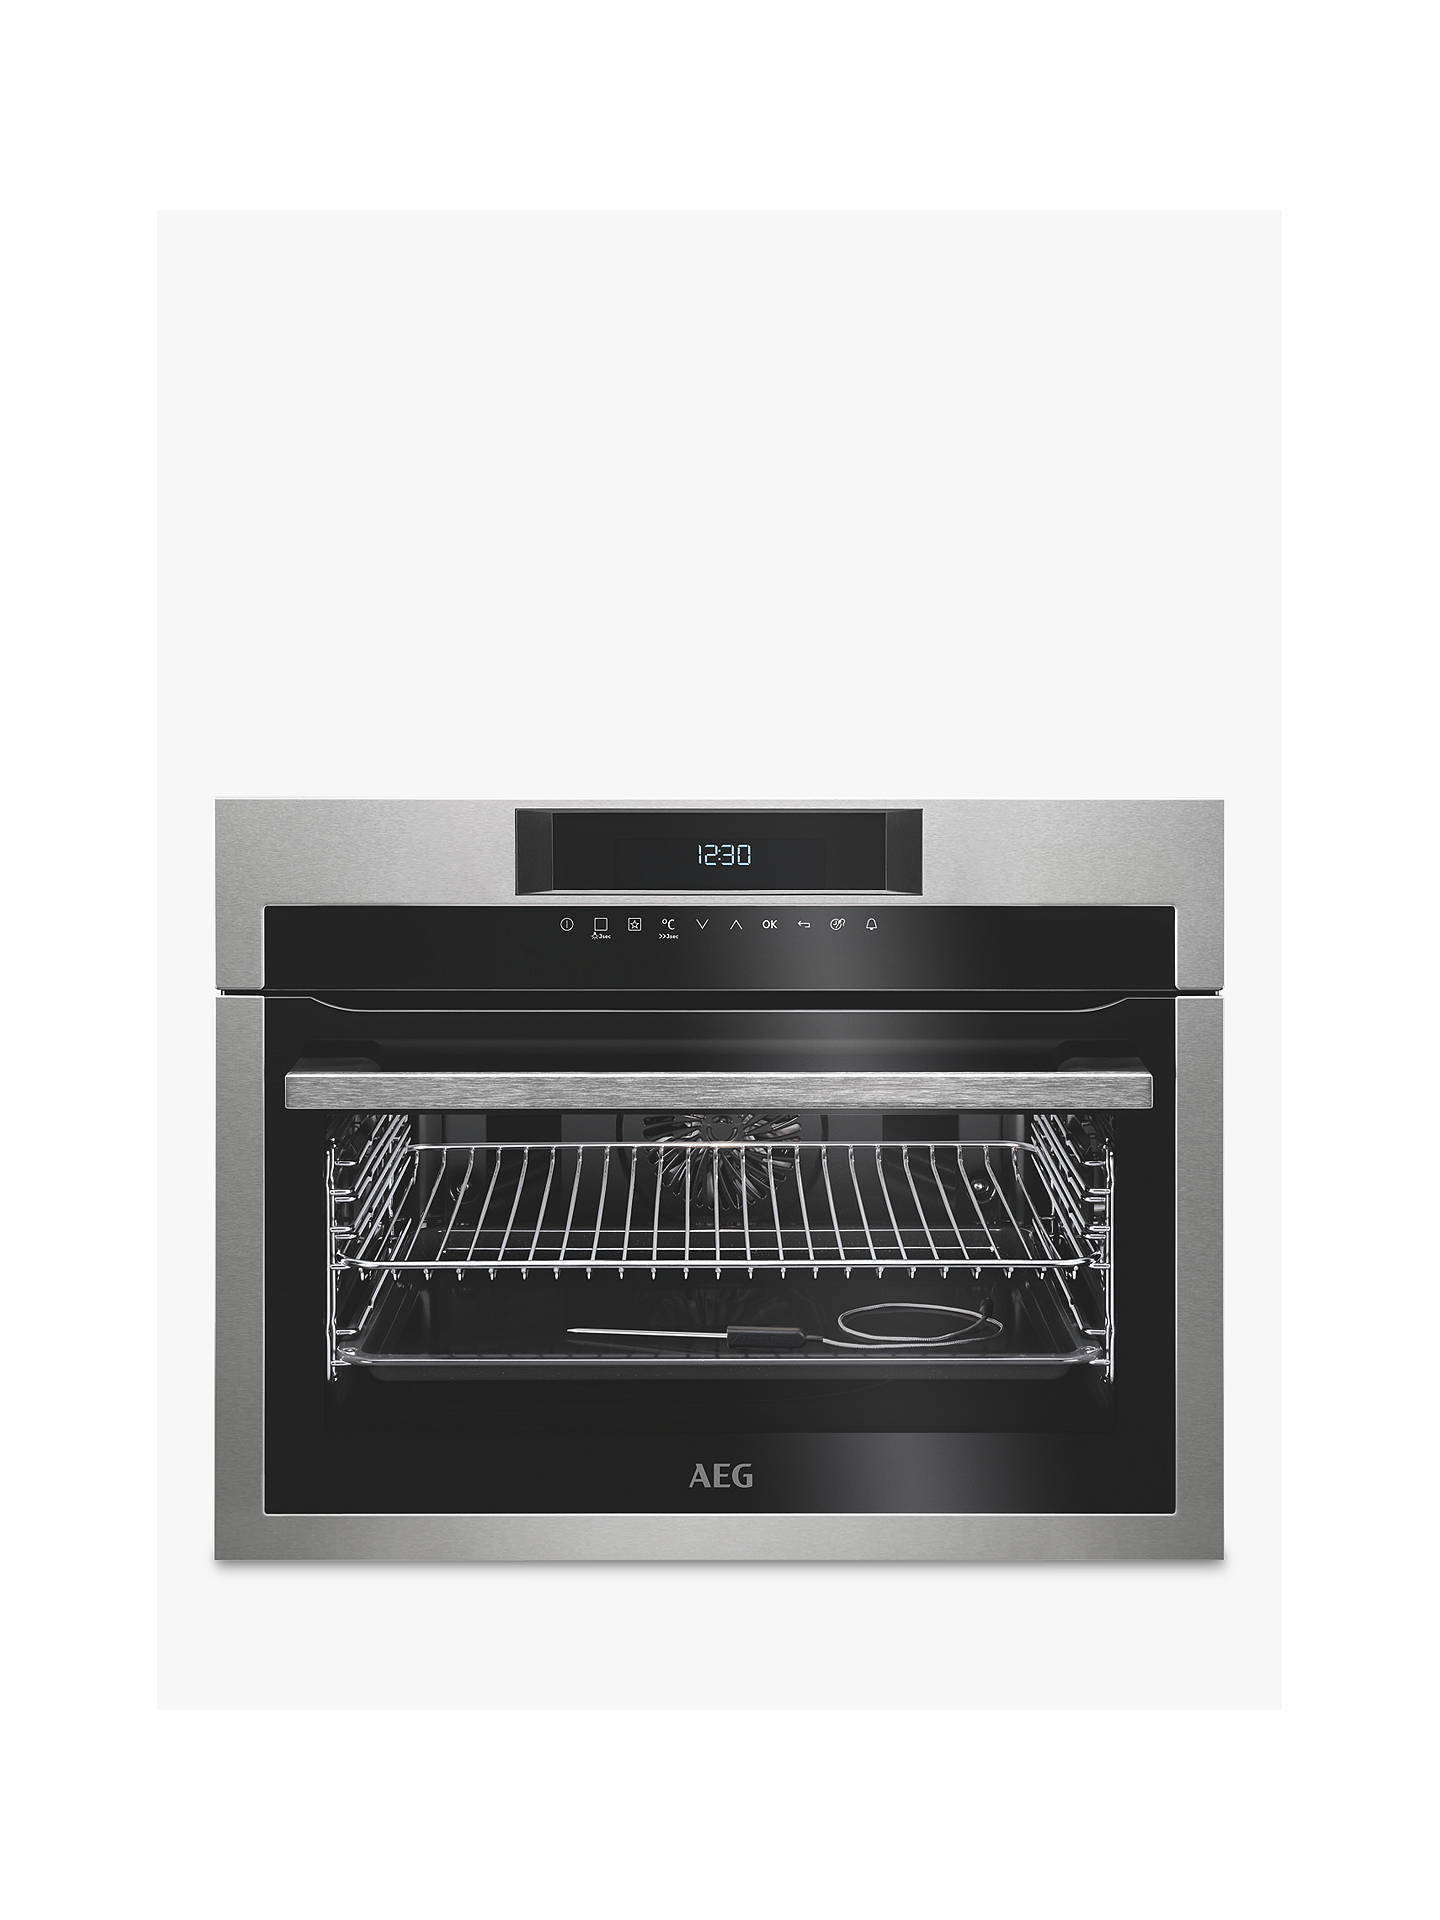 BuyAEG KPE742220M Built-In Compact Single Oven, Stainless Steel Online at johnlewis.com